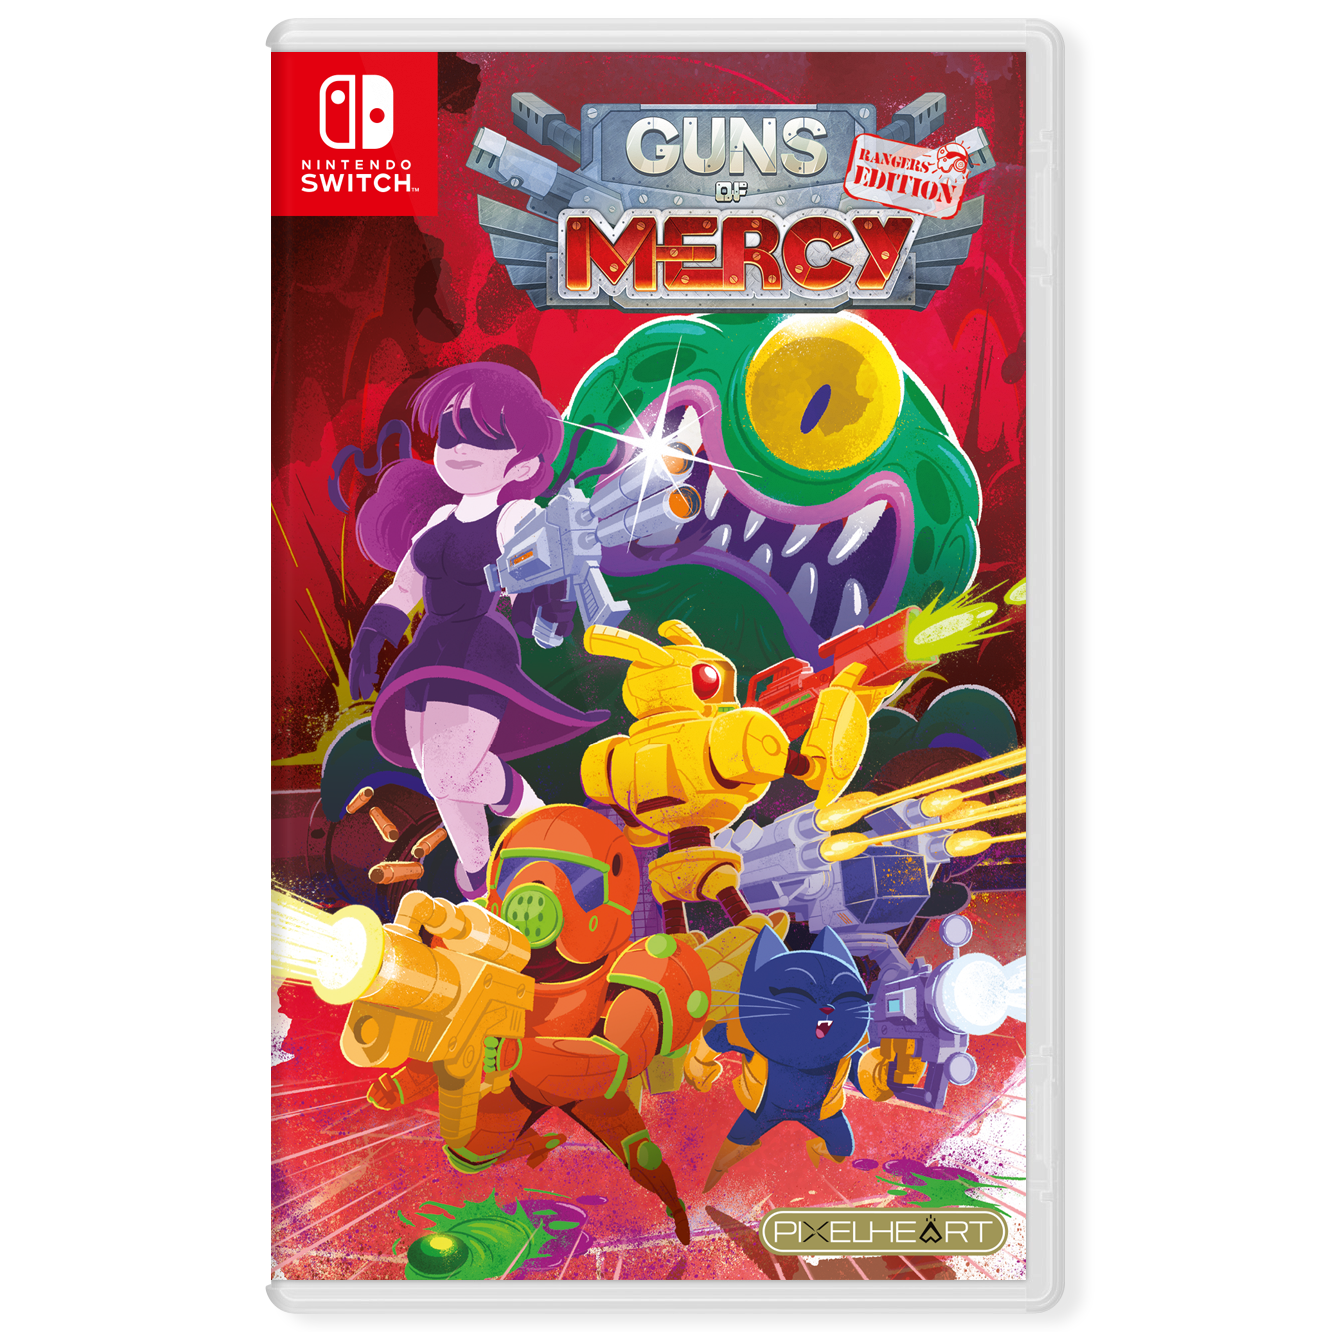 Guns-of-mercy